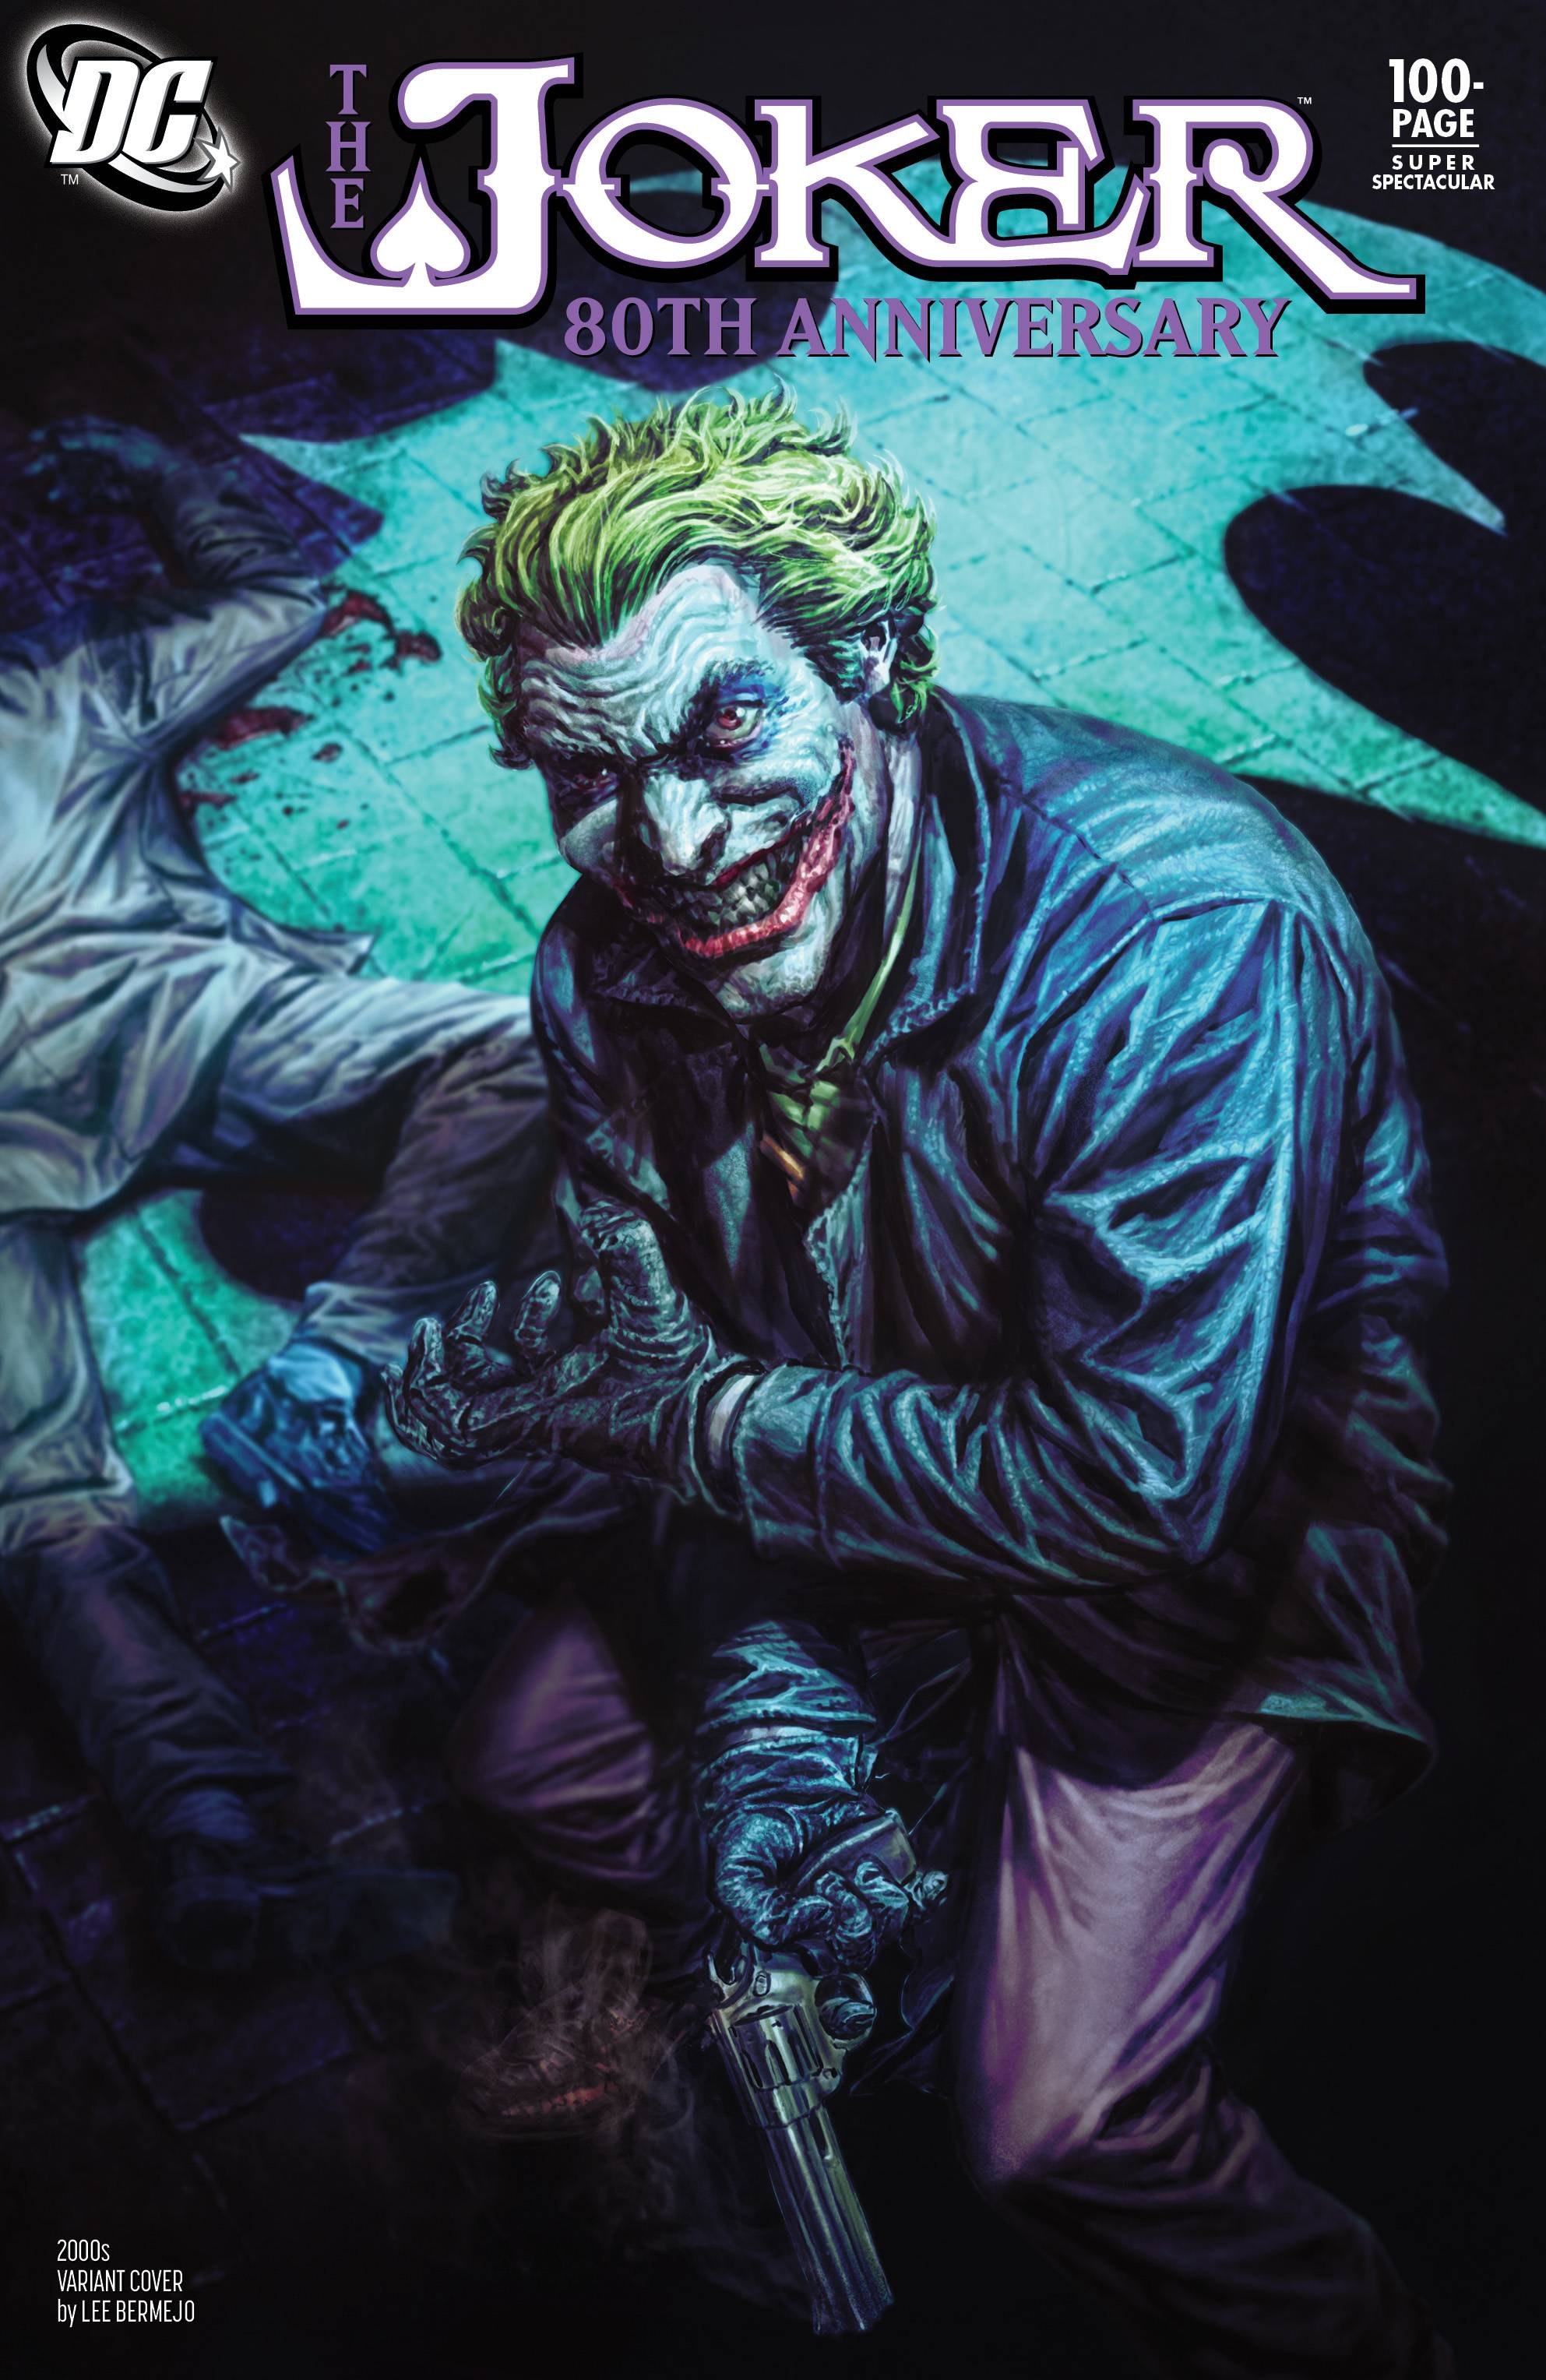 Joker 80th Anniv 100 Page Super Spect #1 2000s Lee Bermejo Cover